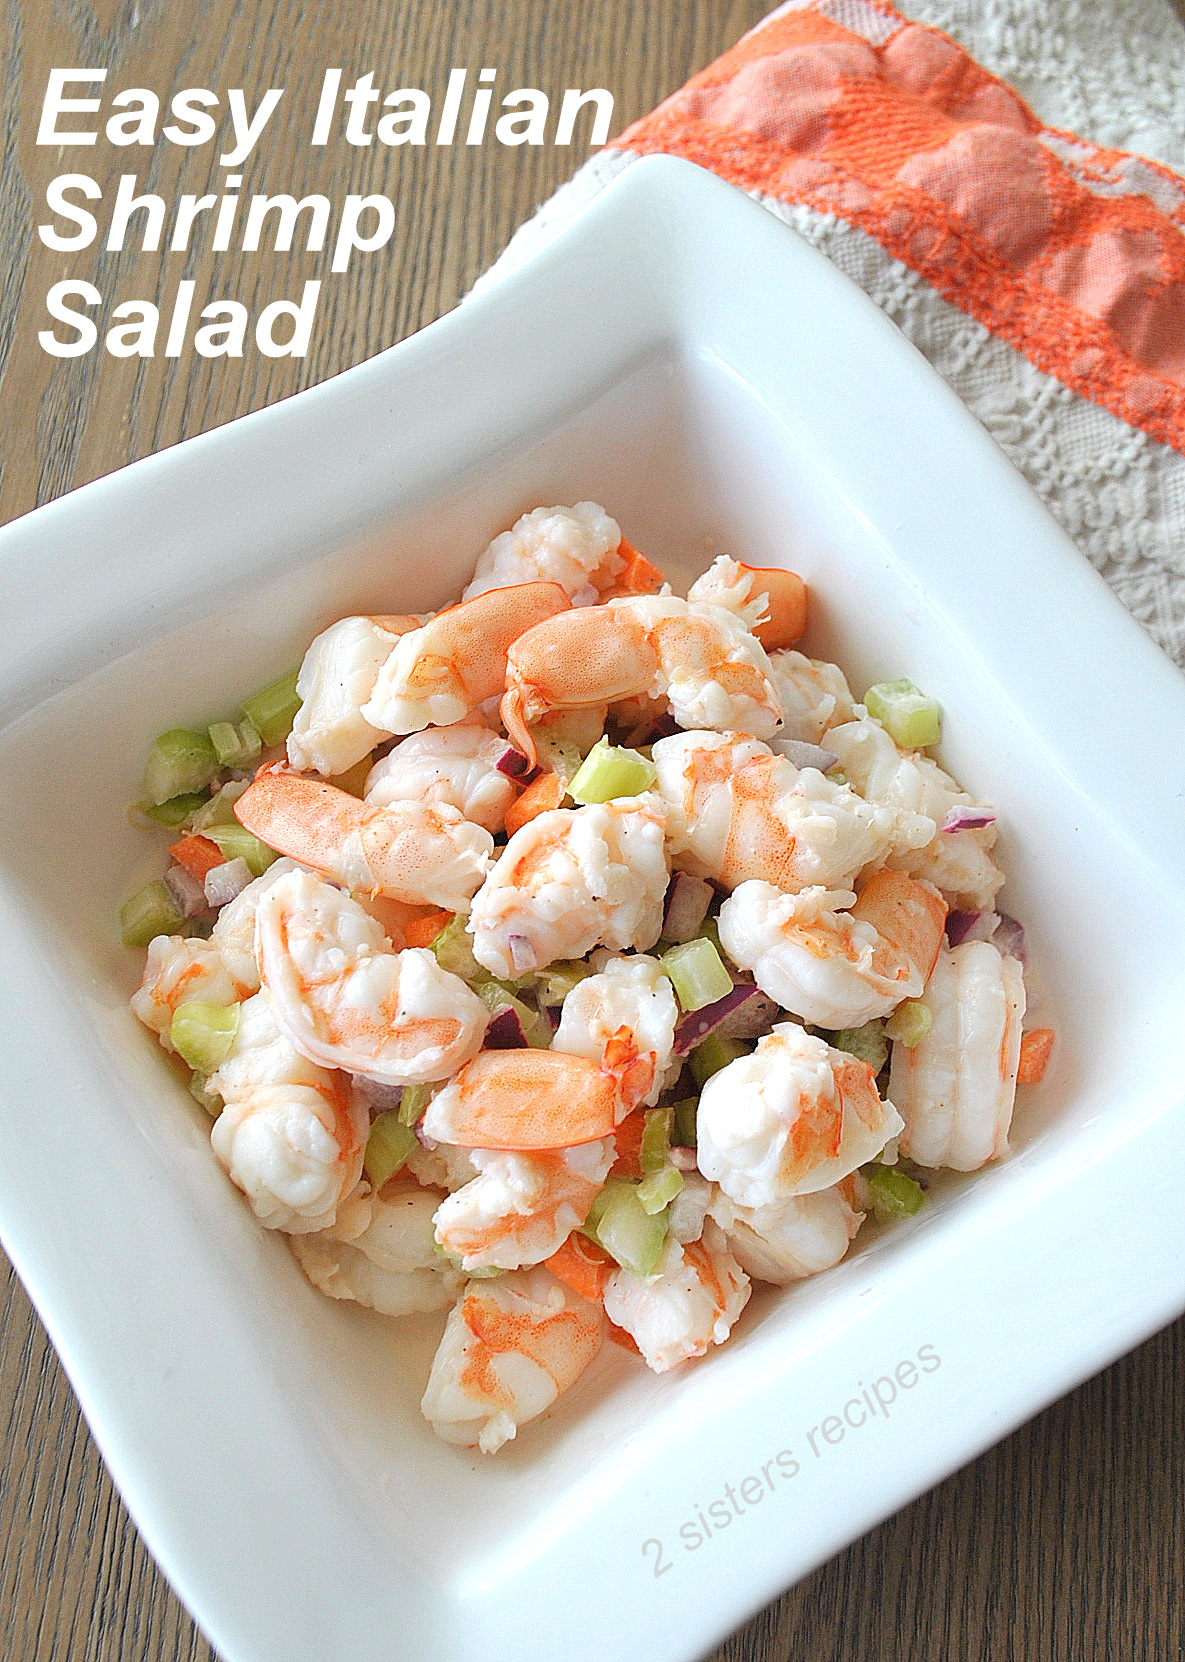 Easy Italian Shrimp Salad 2 Sisters Recipes By Anna And Liz